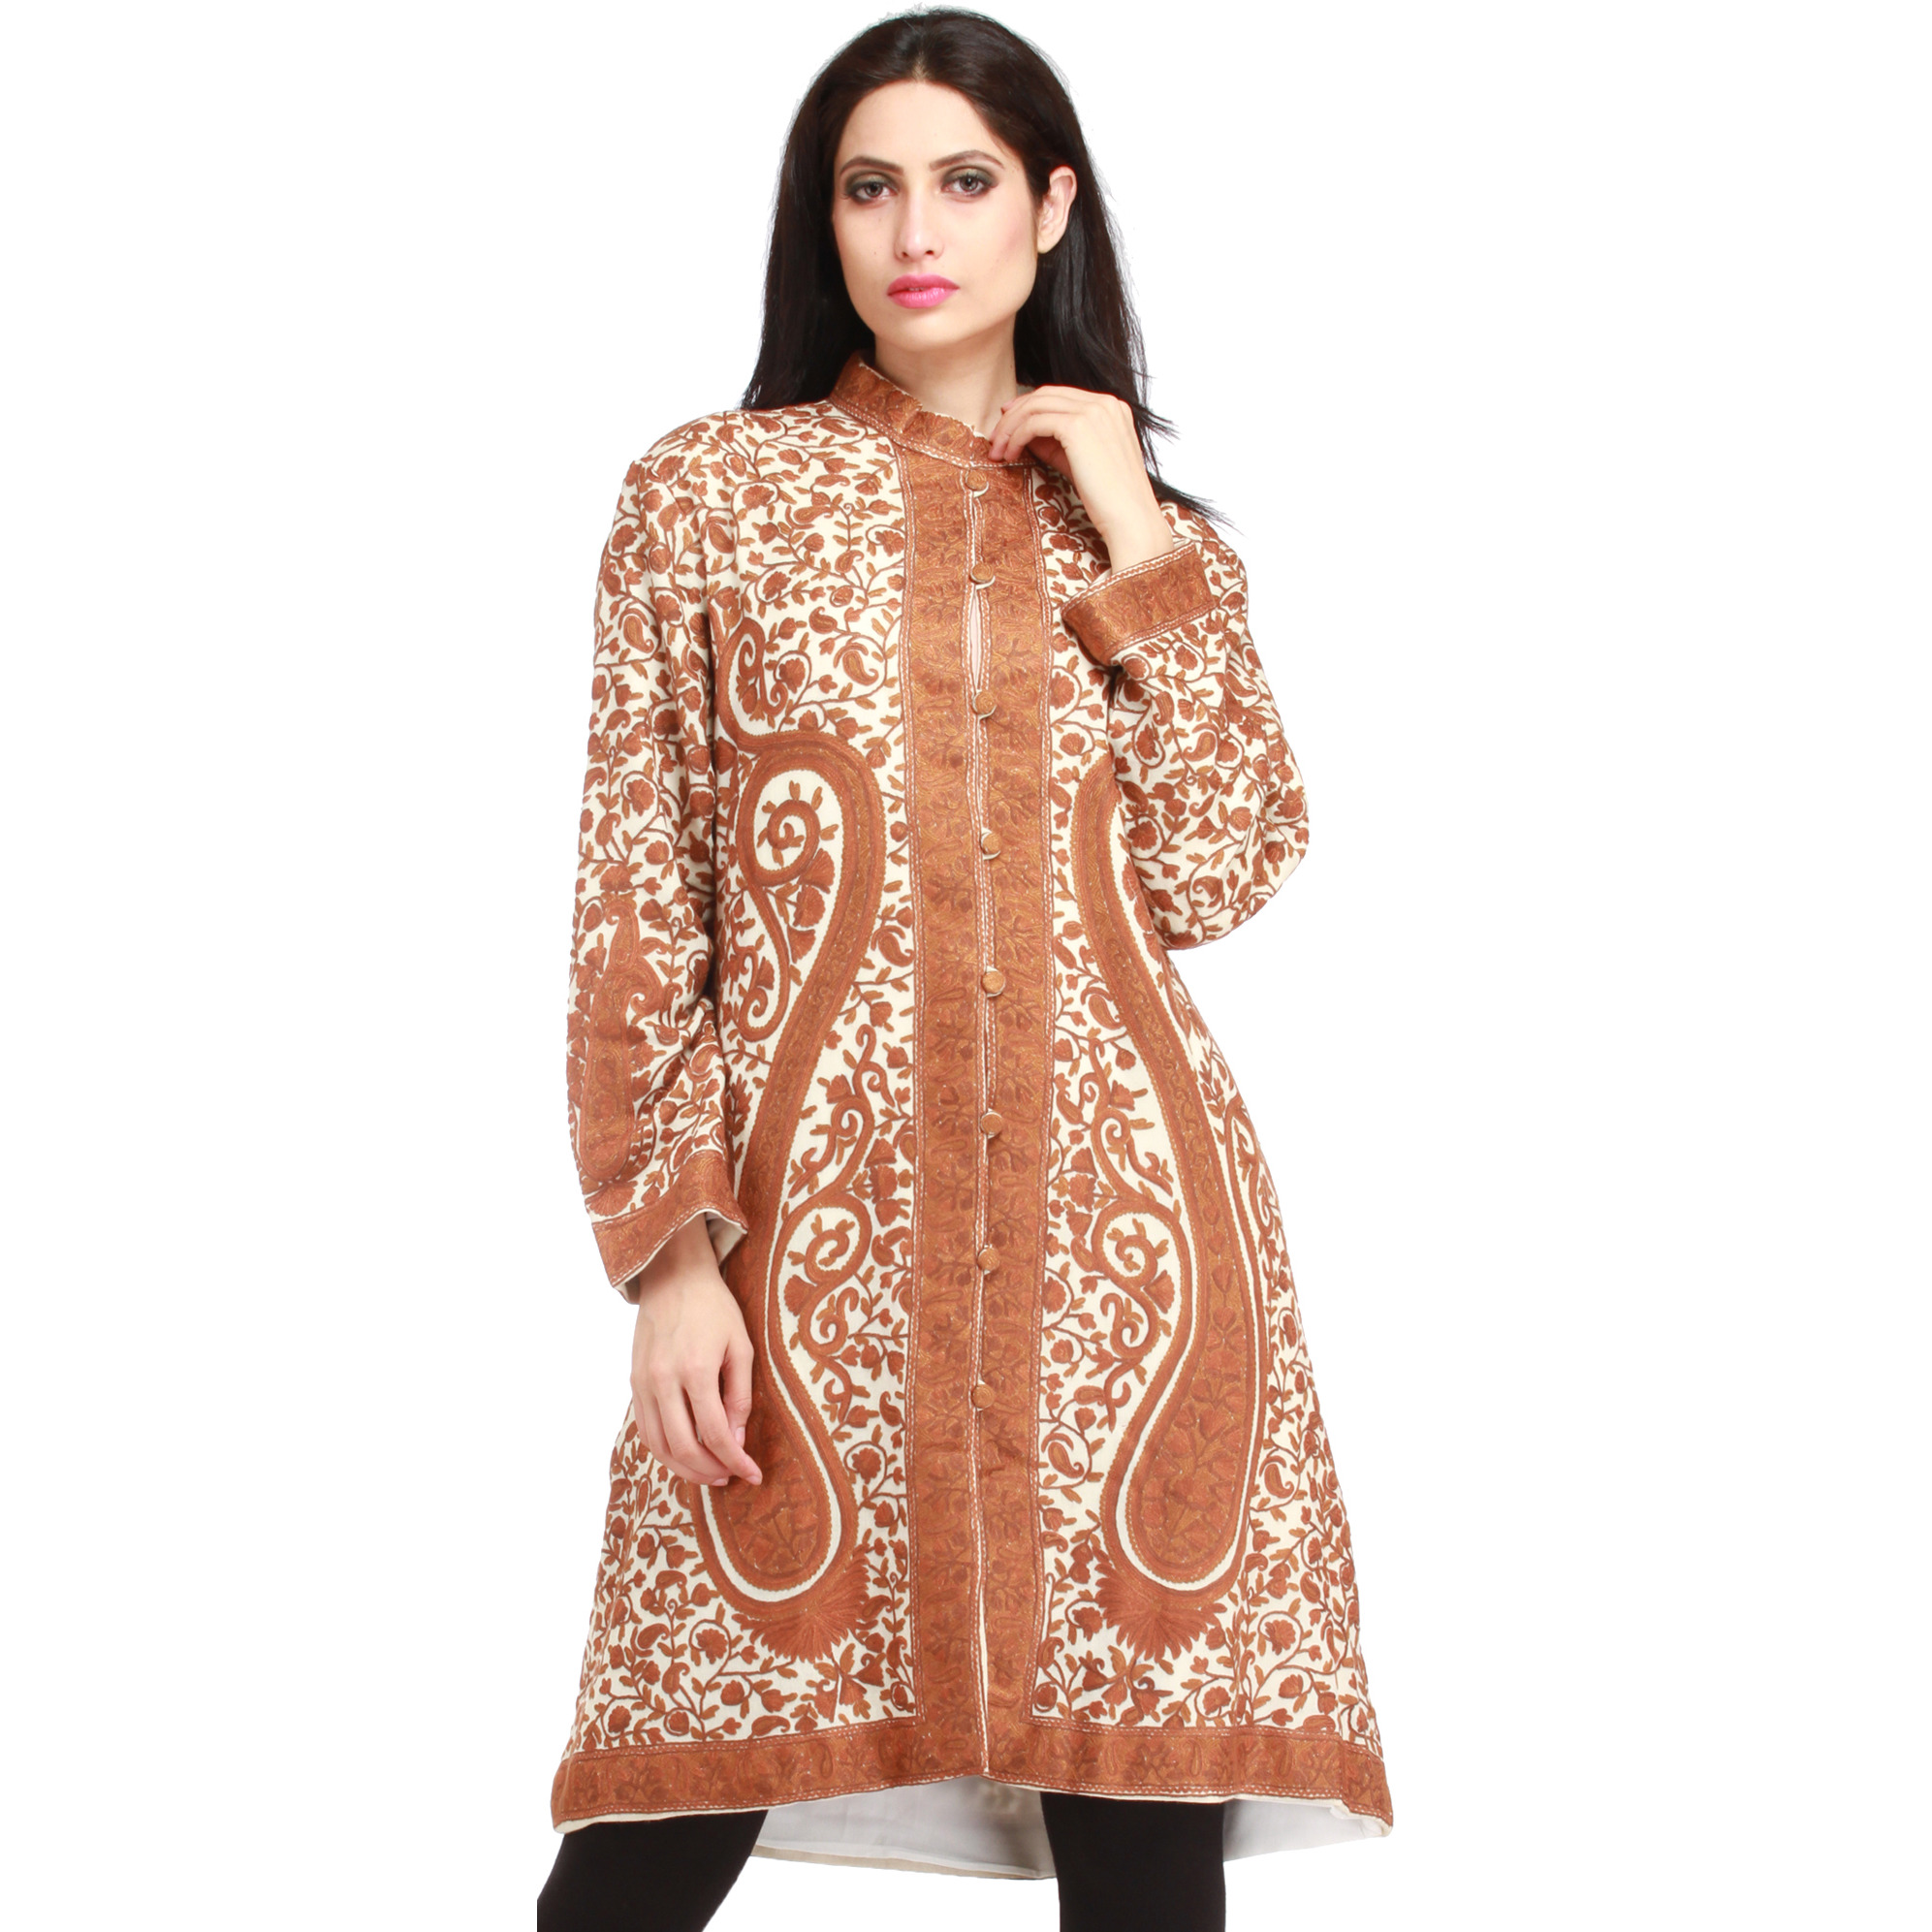 Ivory and Brown Kashmiri Long Jacket with All-Over Hand-Embroidered Paisleys